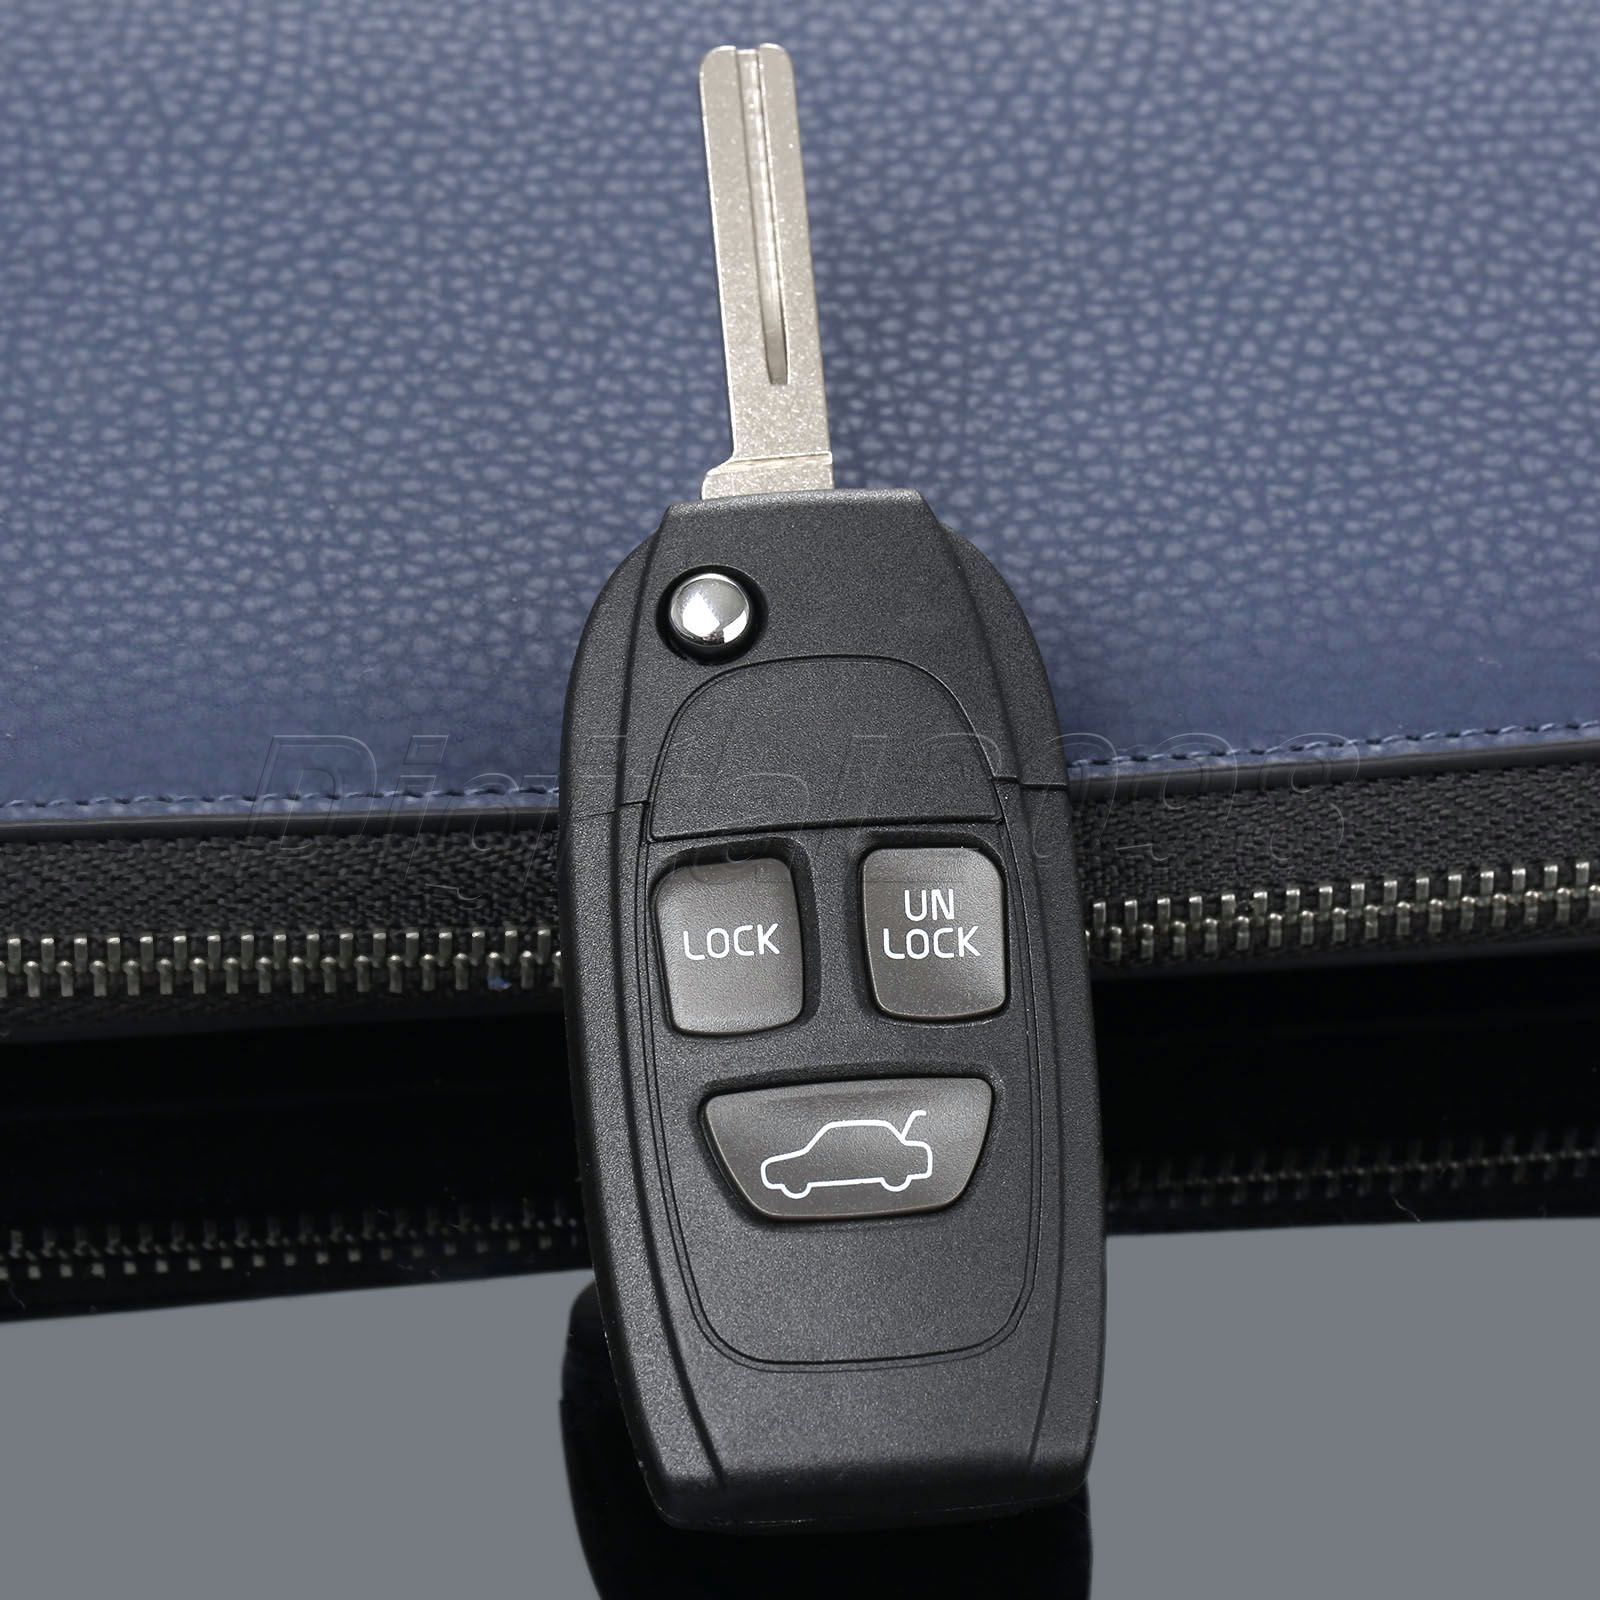 Yetaha Replacement Key Shell Remote Case Fob Folding For Refit VOLVO S40 V40 S60 S80 S90 XC70 XC90 C70 V70 V90 850 960 3 Buttons